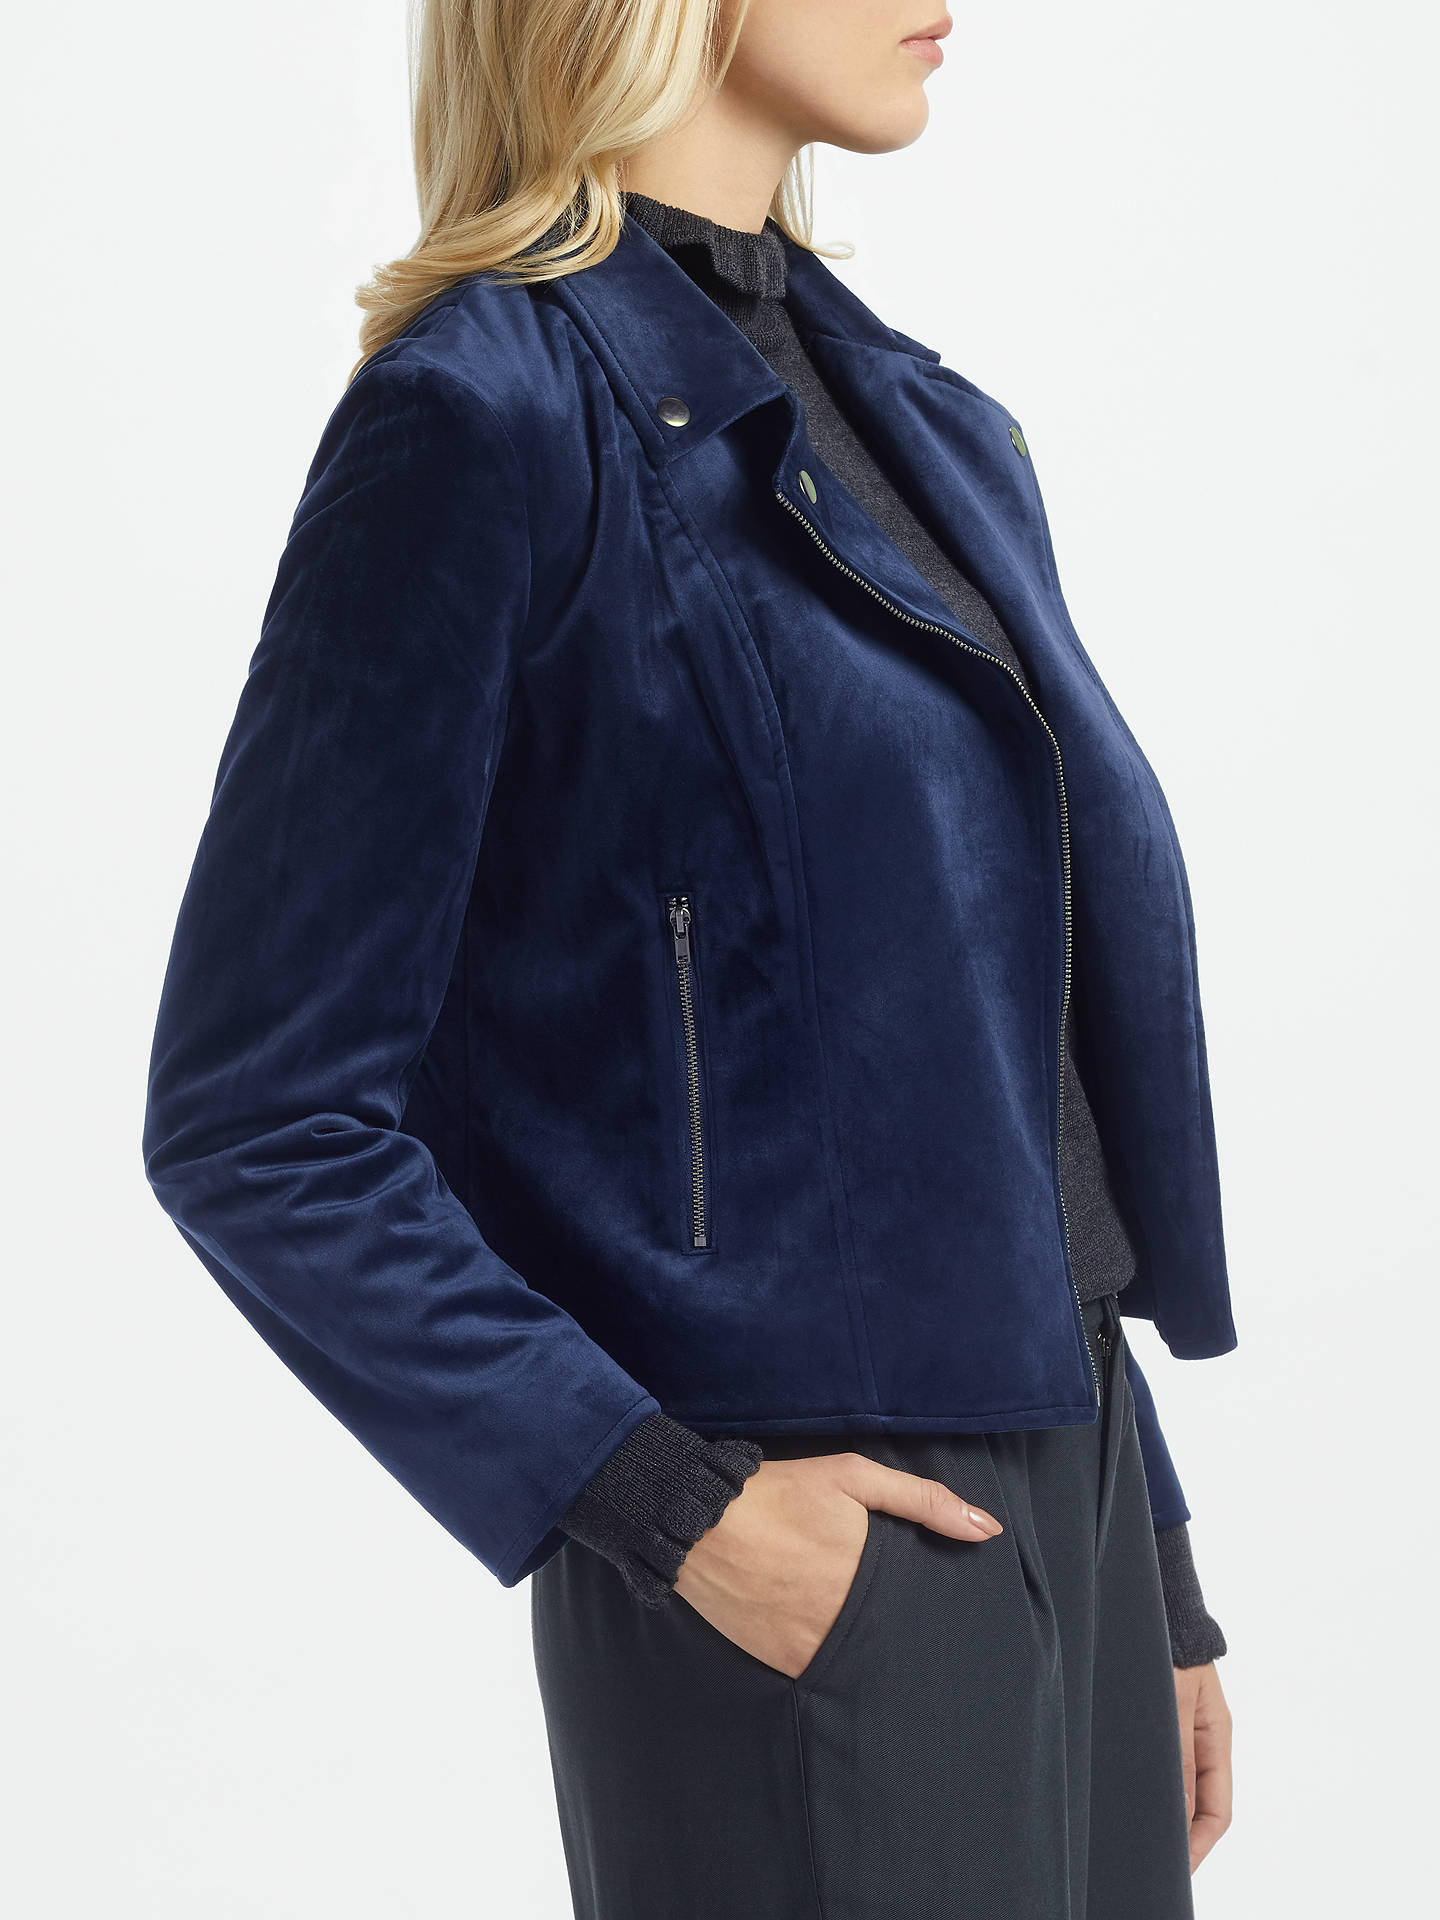 095e95bb7 Great Plains Wren Velvet Biker Jacket, Classic Navy at John Lewis ...